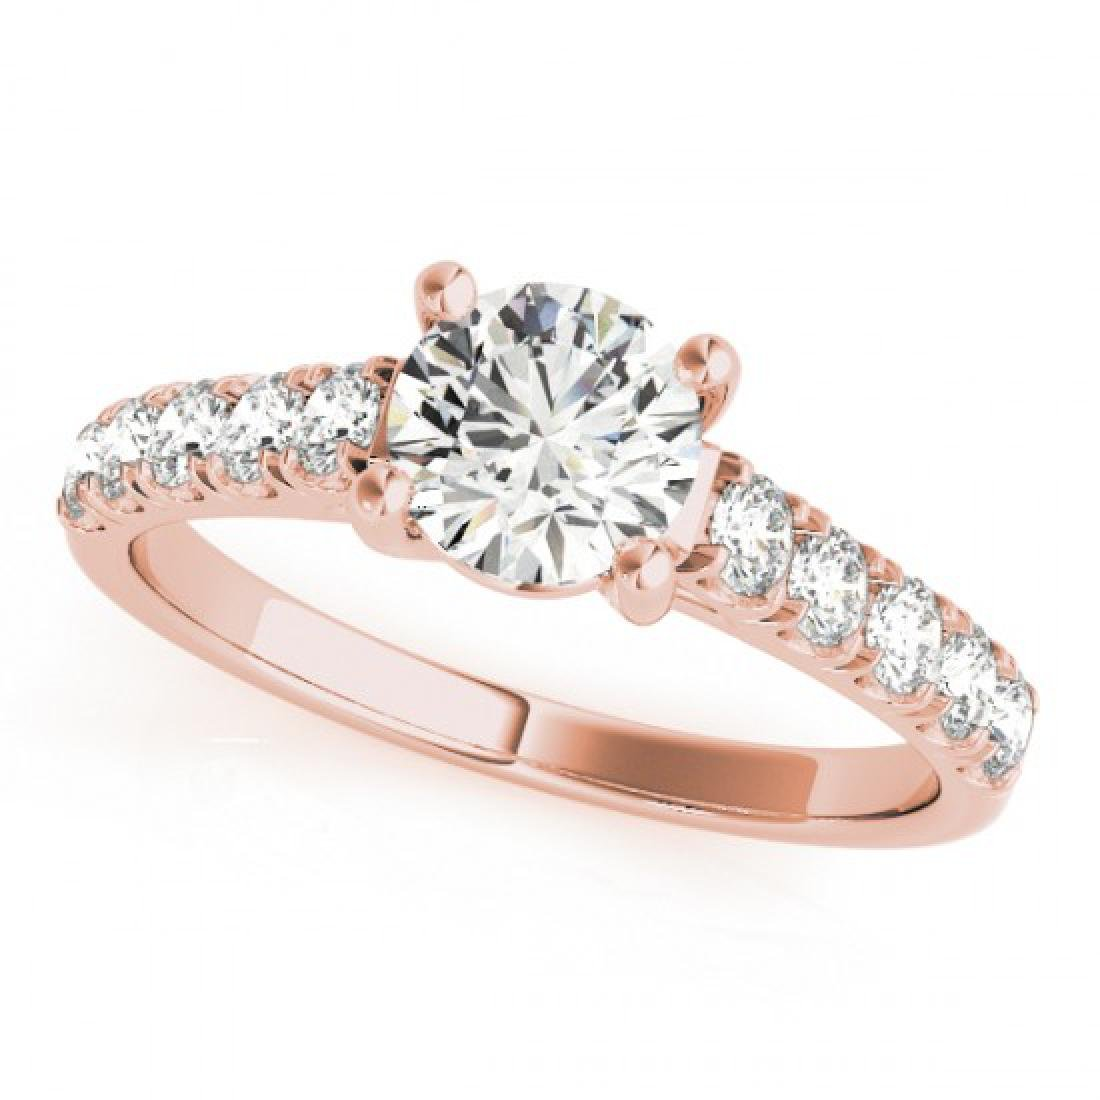 2.1 CTW Certified VS/SI Diamond Solitaire Ring 14K Rose